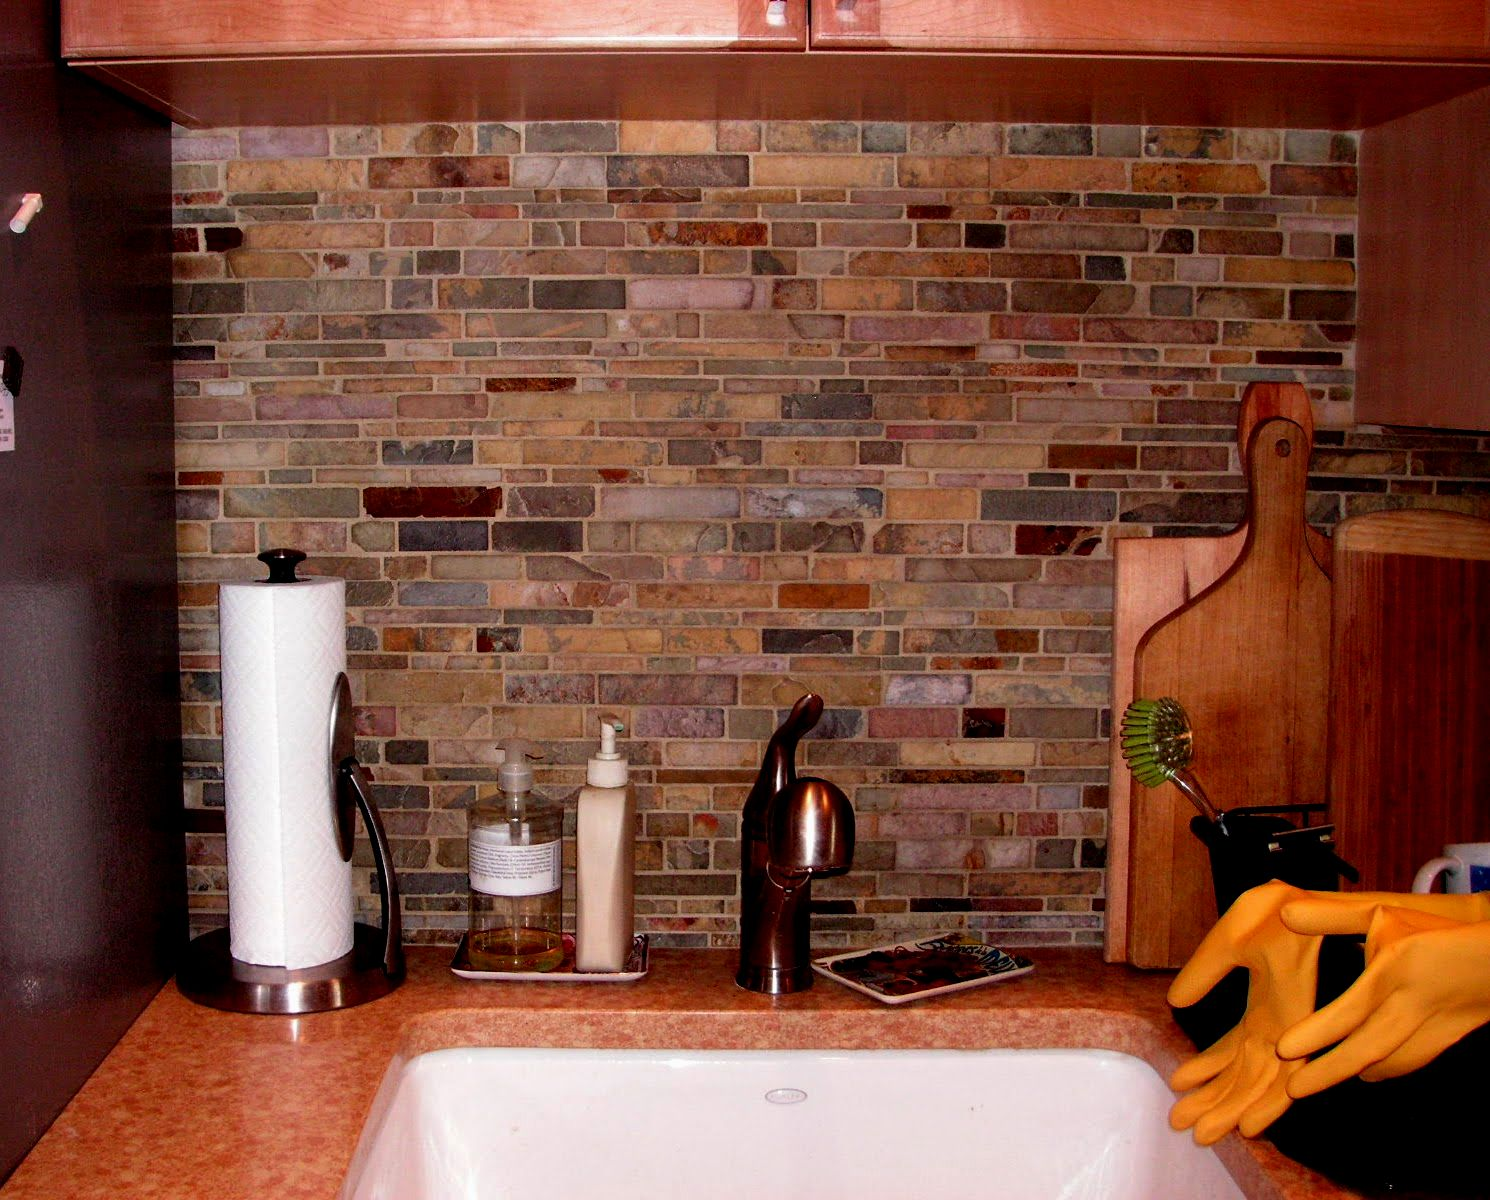 awesome installing bathroom tile wallpaper-Wonderful Installing Bathroom Tile Ideas